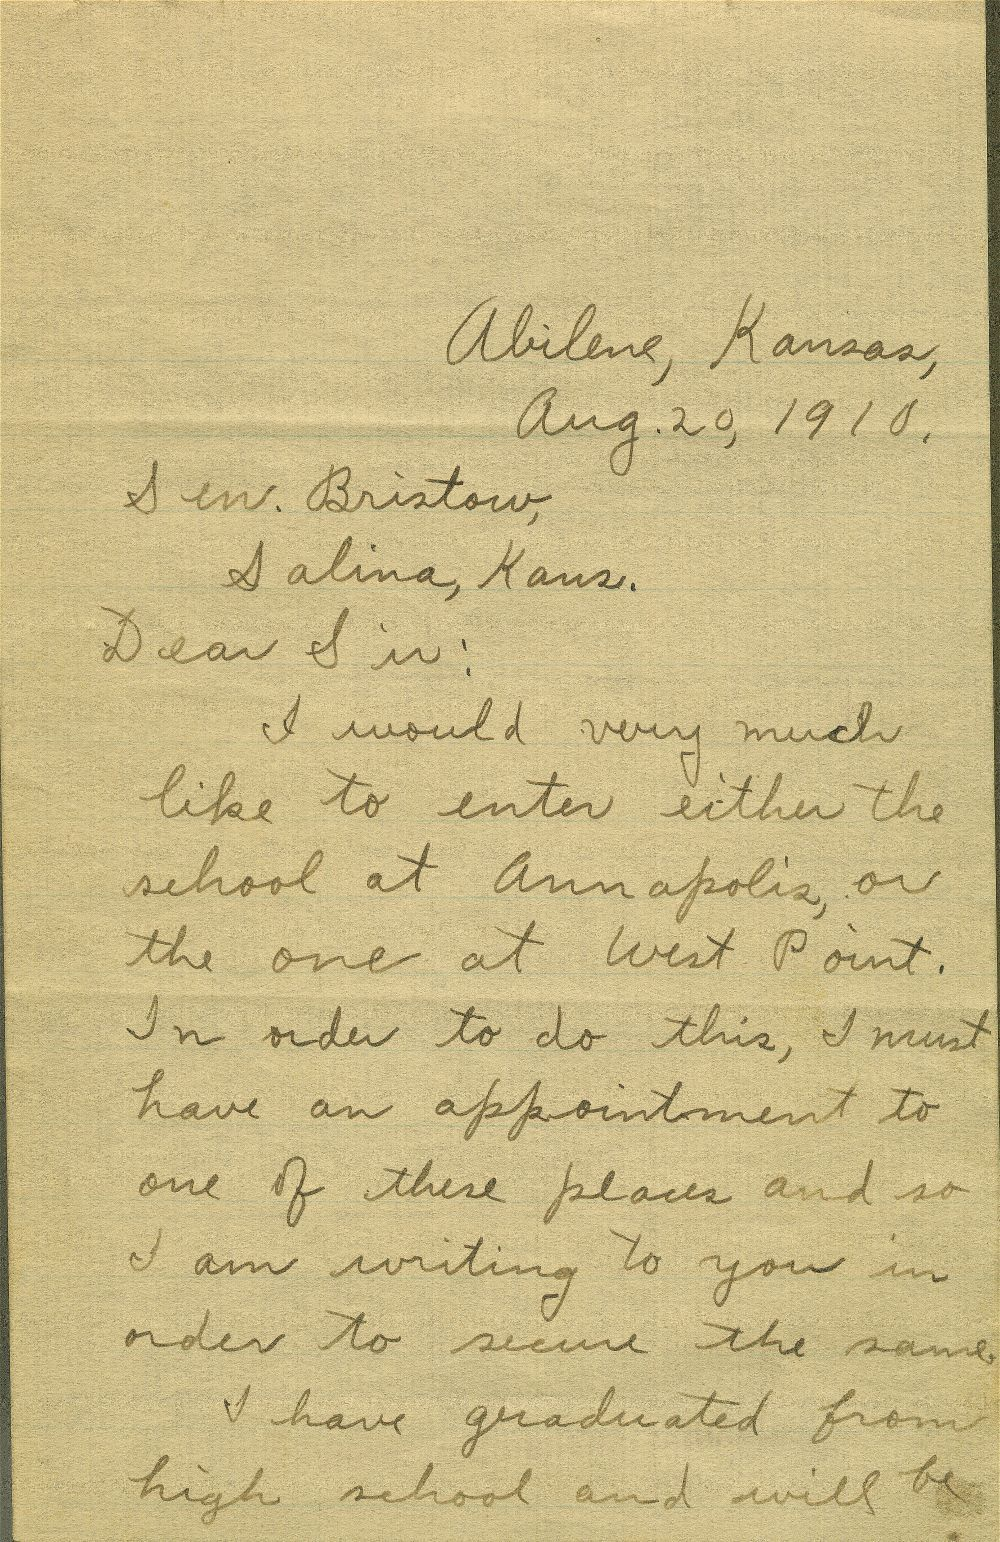 Correspondence between Dwight David Eisenhower and U.S. Senator Joseph L. Bristow concerning Eisenhower's appointment to a military academy - 1